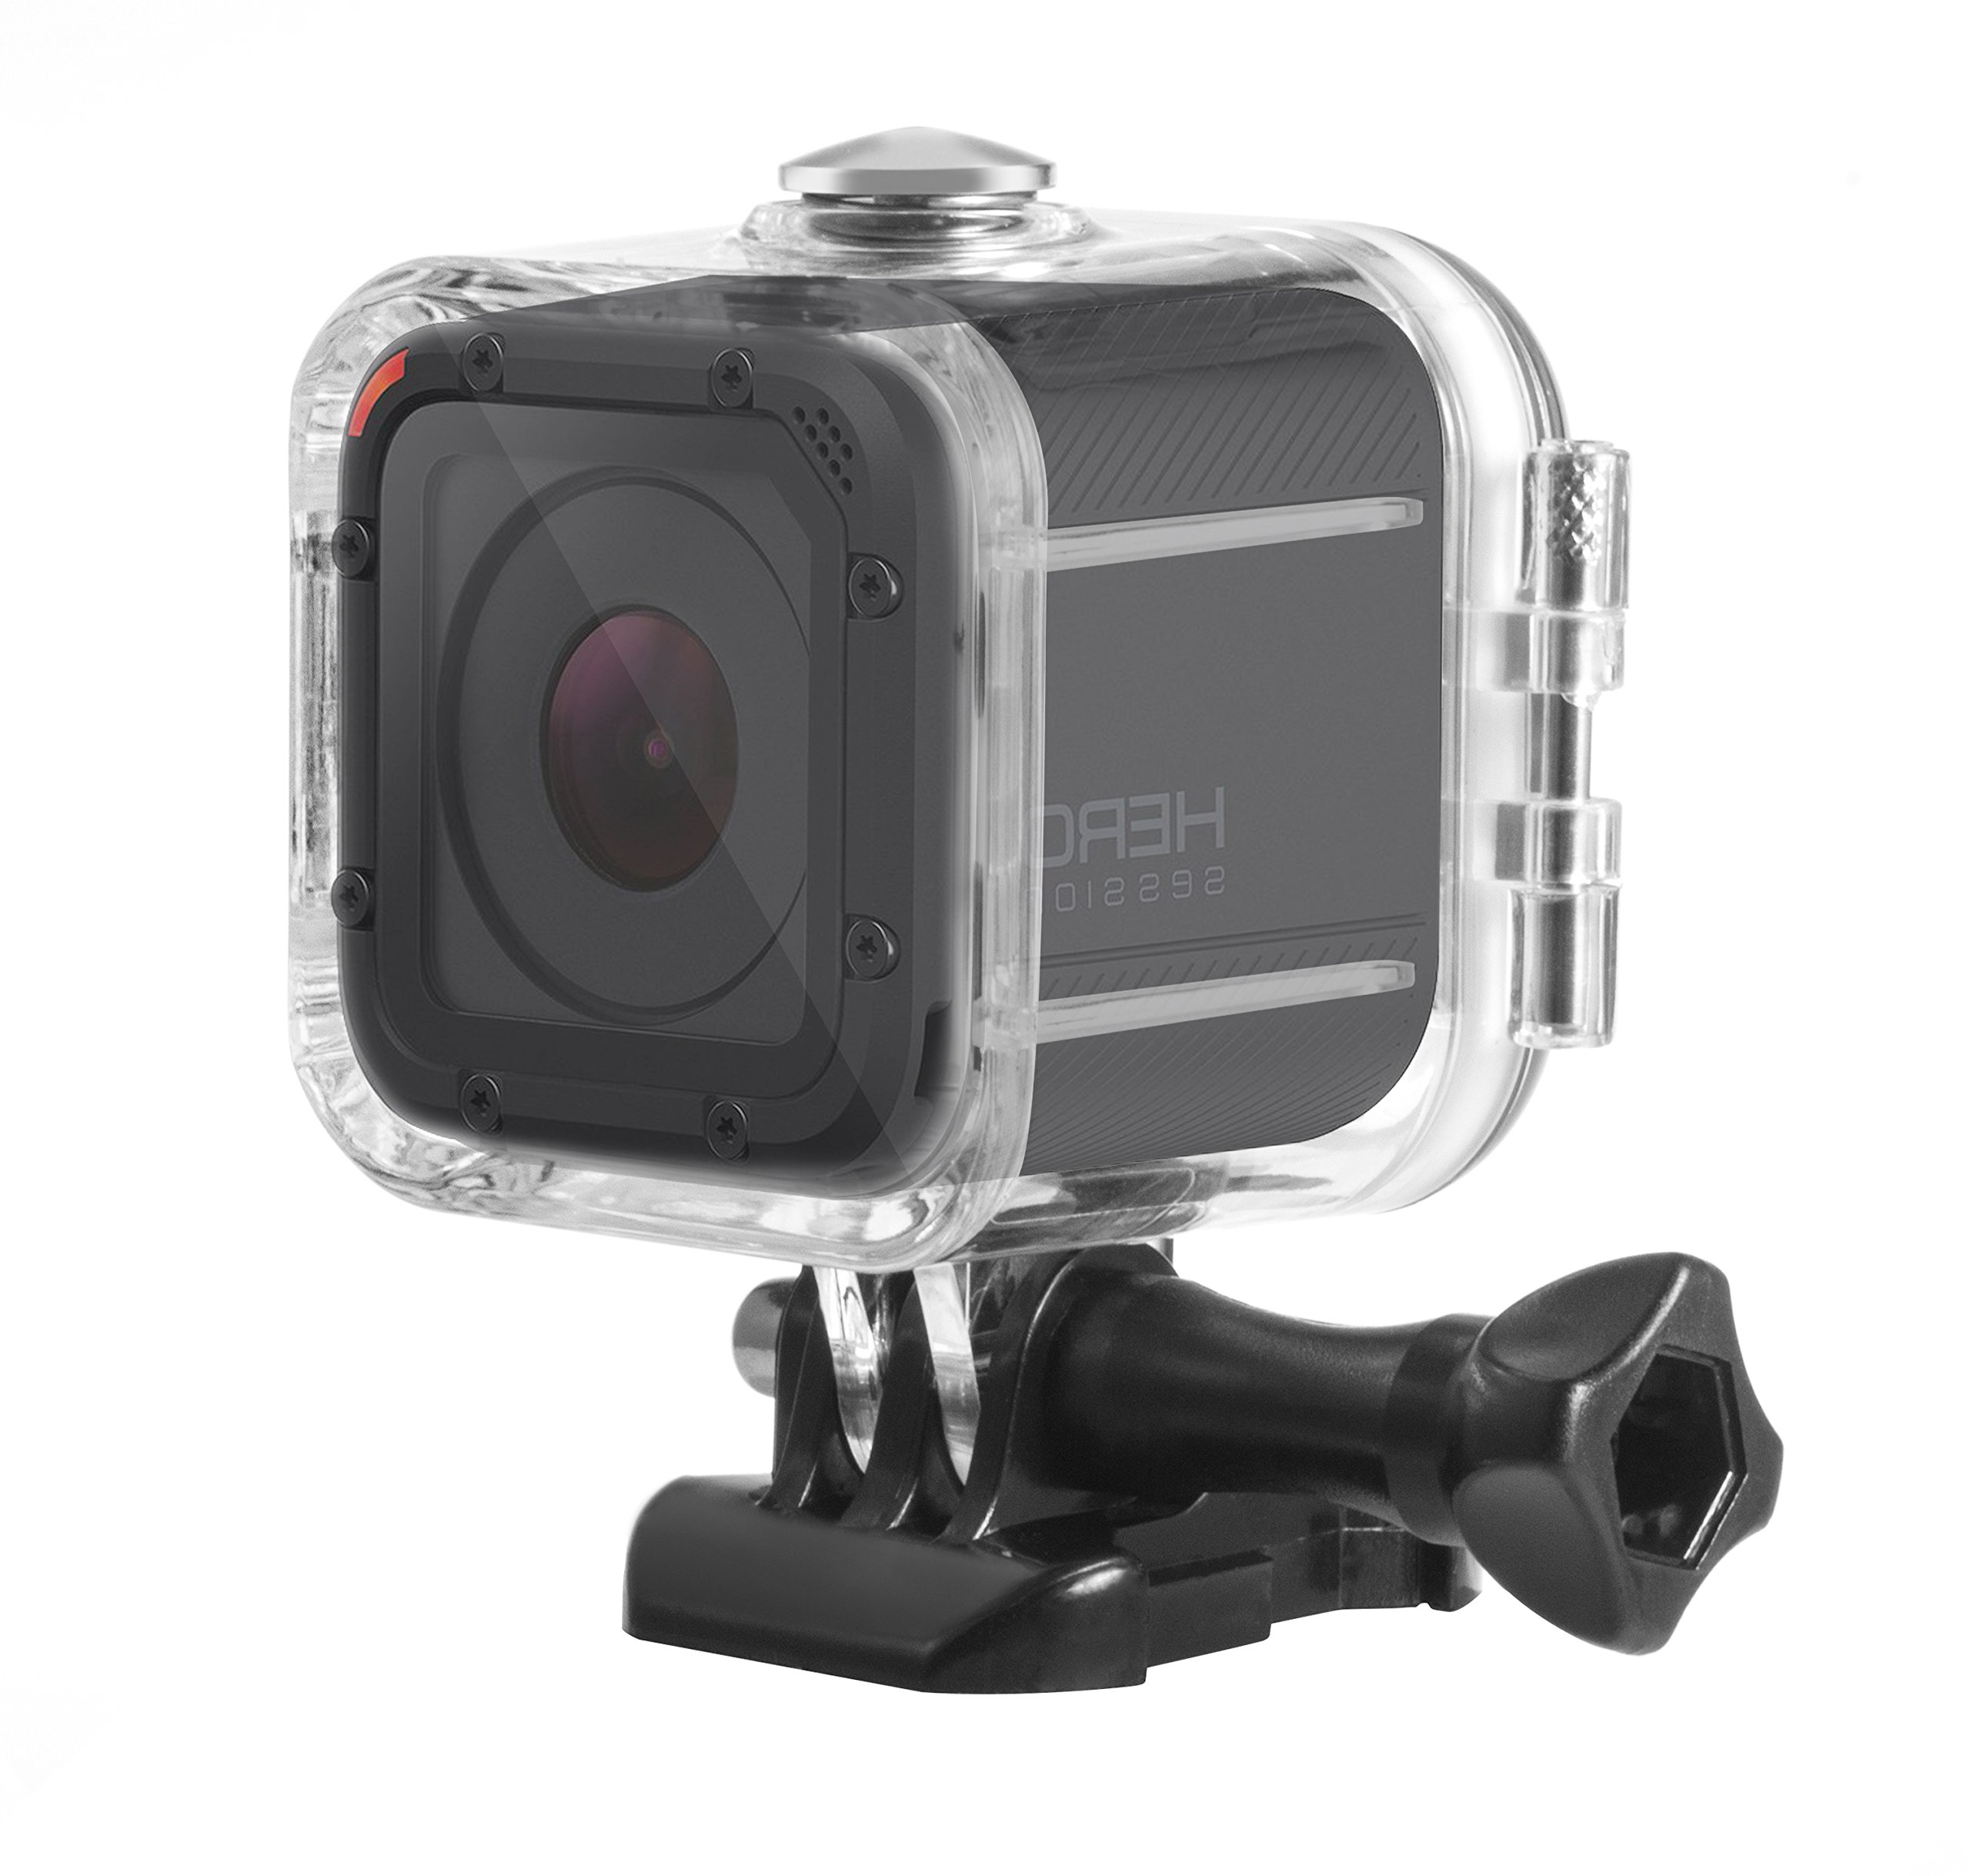 Deyard 45M Dive Housing Case for GoPro Hero 5 Session/Hero Session/Hero 4 Session Waterproof Case Diving Protective Shell with Bracket Accessories Kit for GoPro Hero5 Session & Hero Session by Deyard